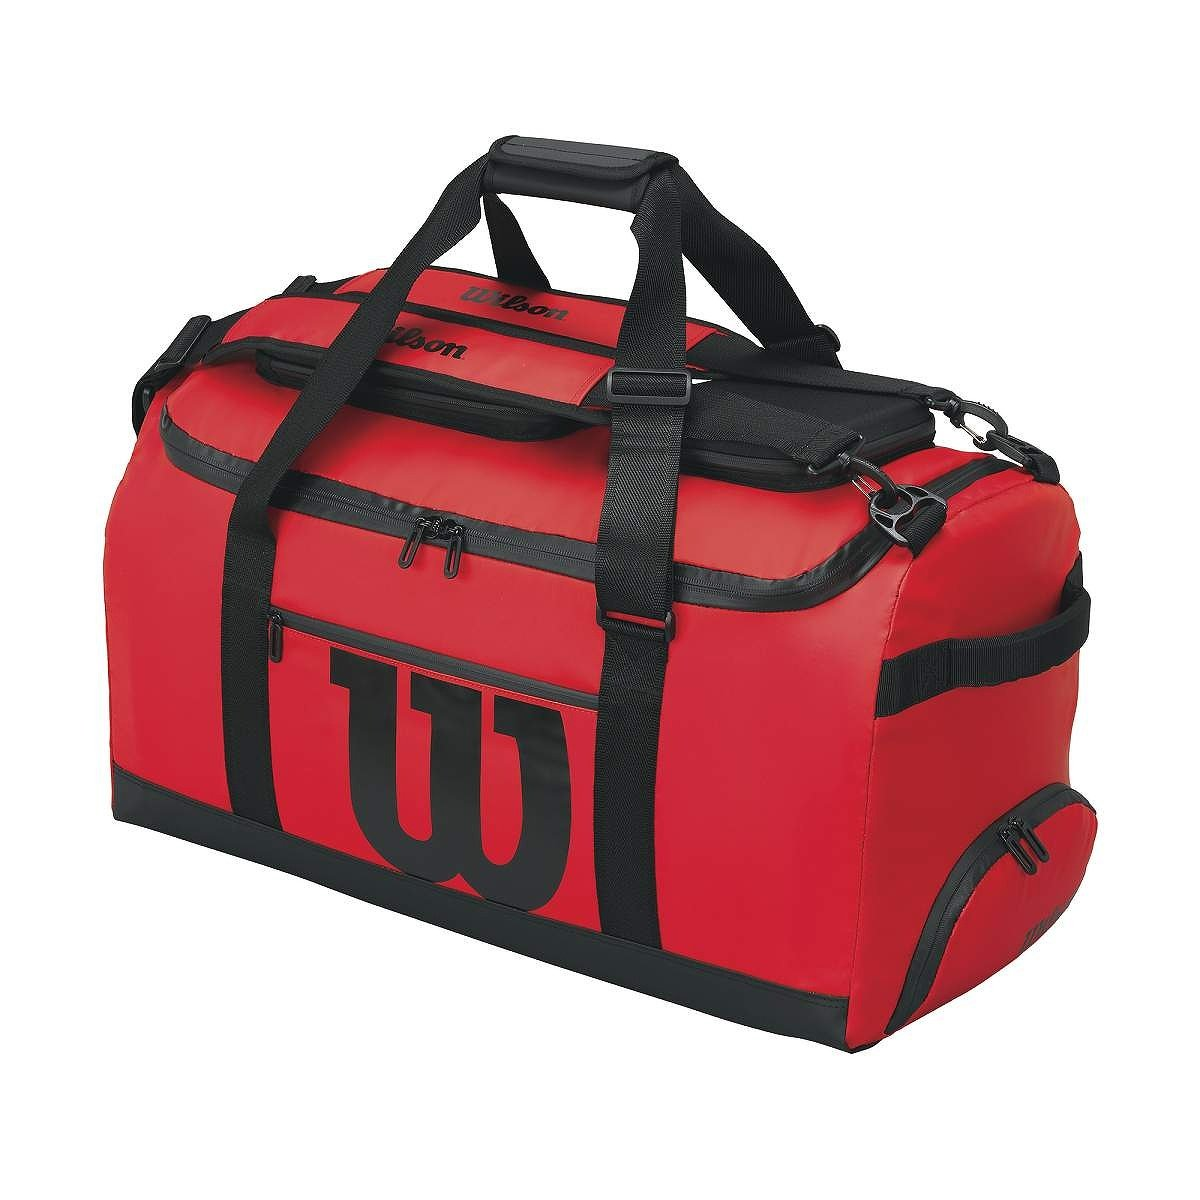 2016 Wilson Tennis Performance Travel Tech Duffle Bag Red by Wilson